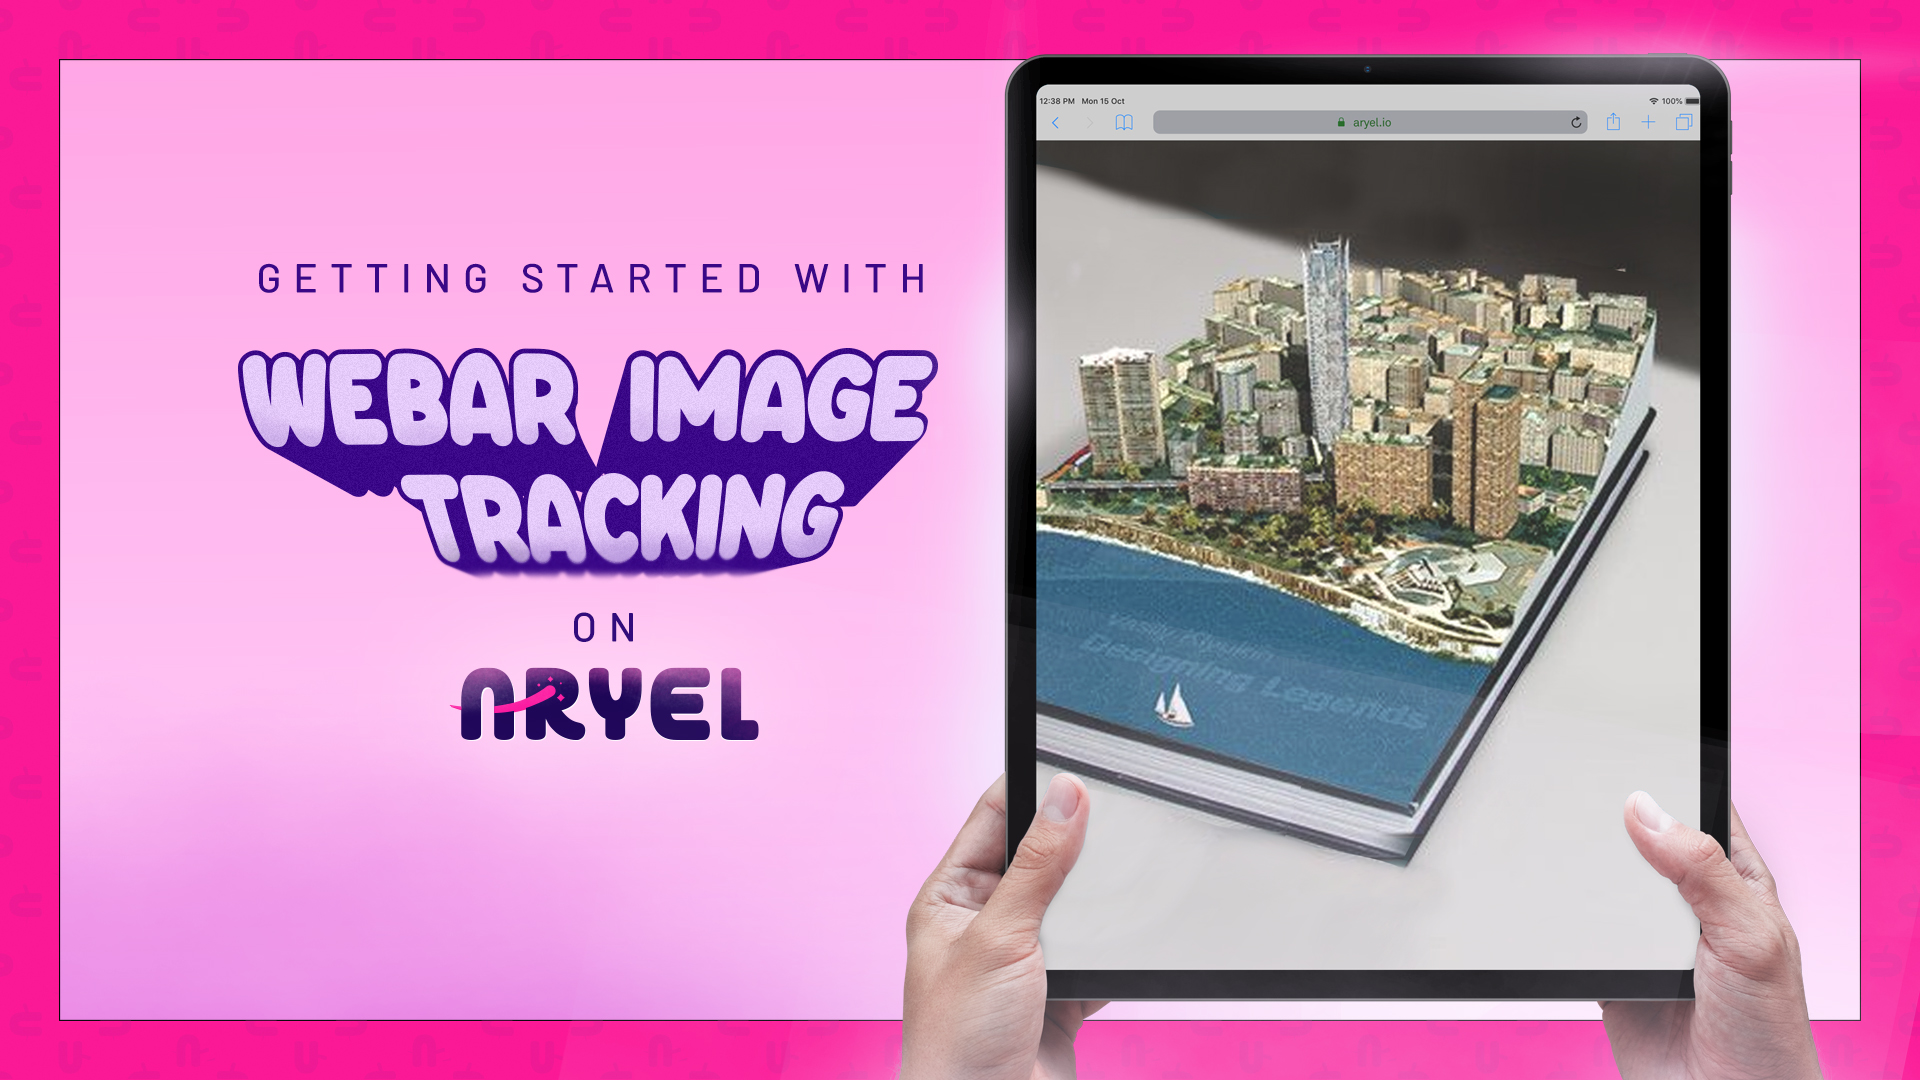 Getting Started with WebAR Imager Tracking